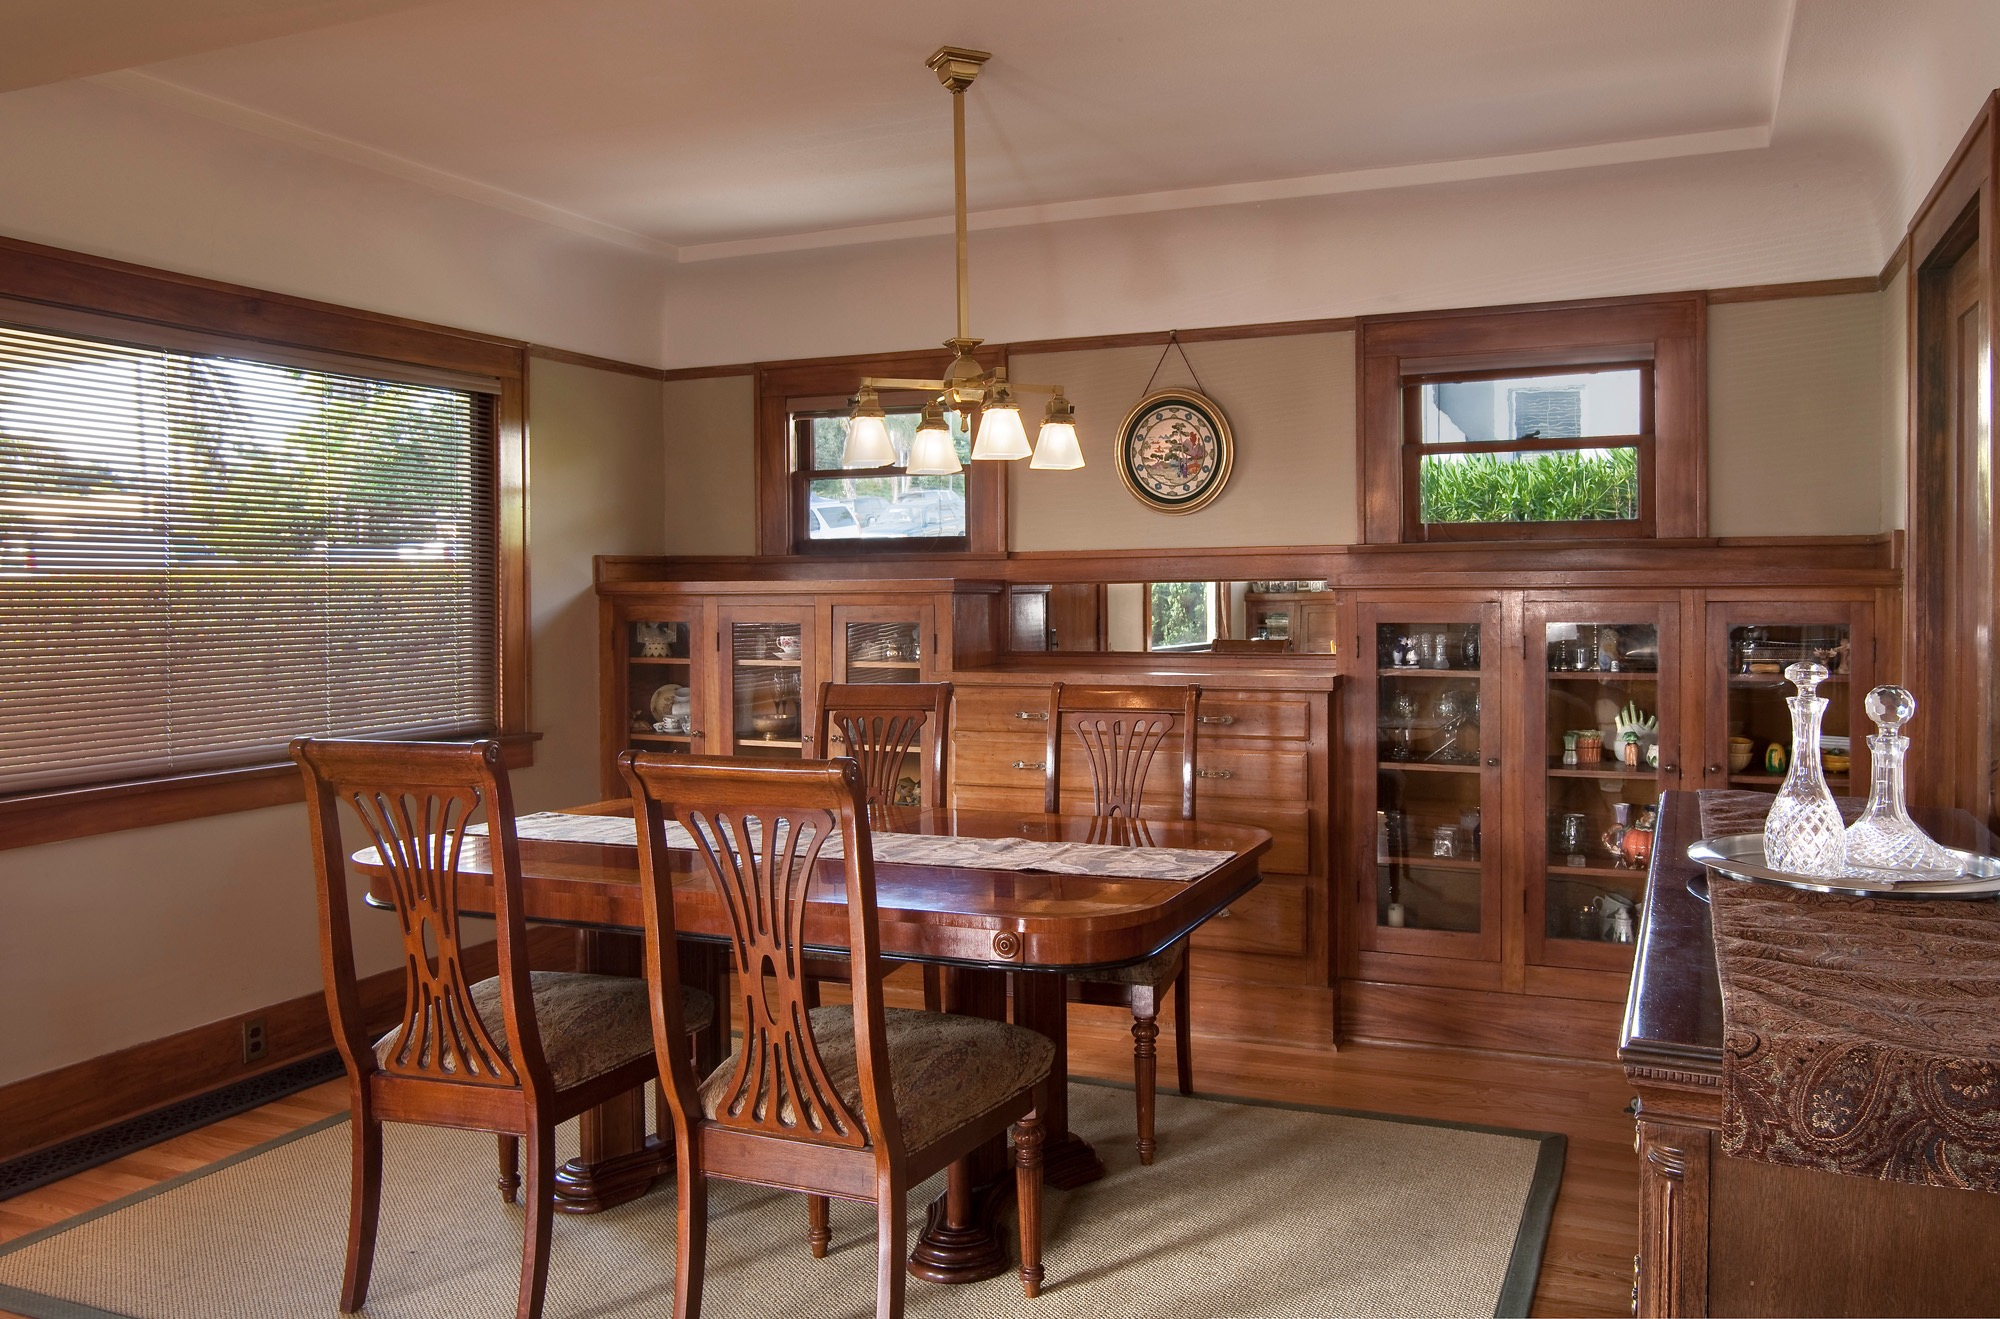 Classic Wooden Craftsman Dining Room With Built In Cabinets (View 5 of 32)